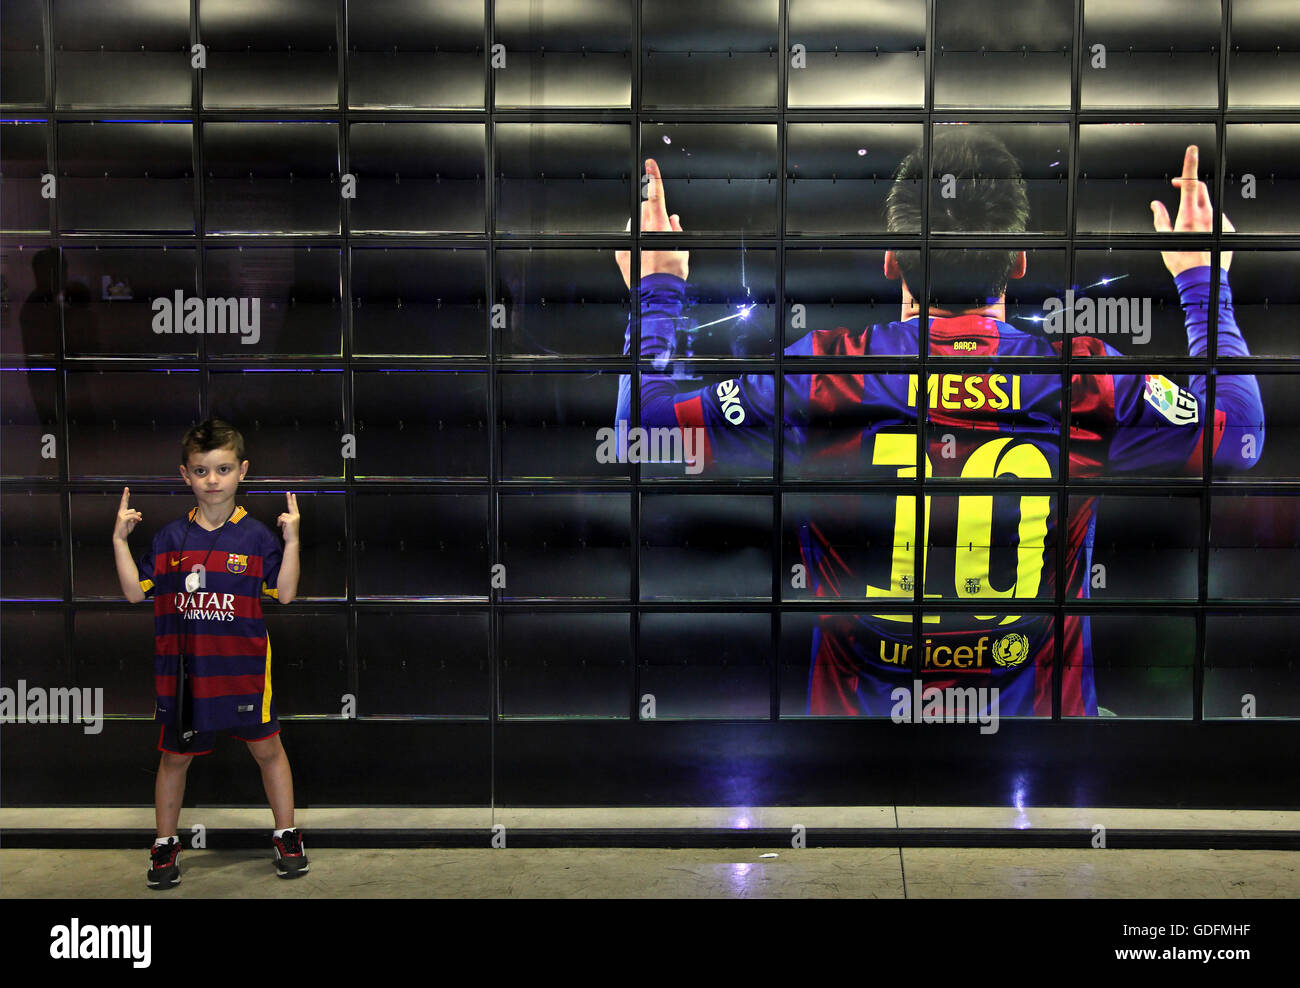 Next generation 'Messi' in the FC Barcelona museum, Barcelona, Spain. - Stock Image